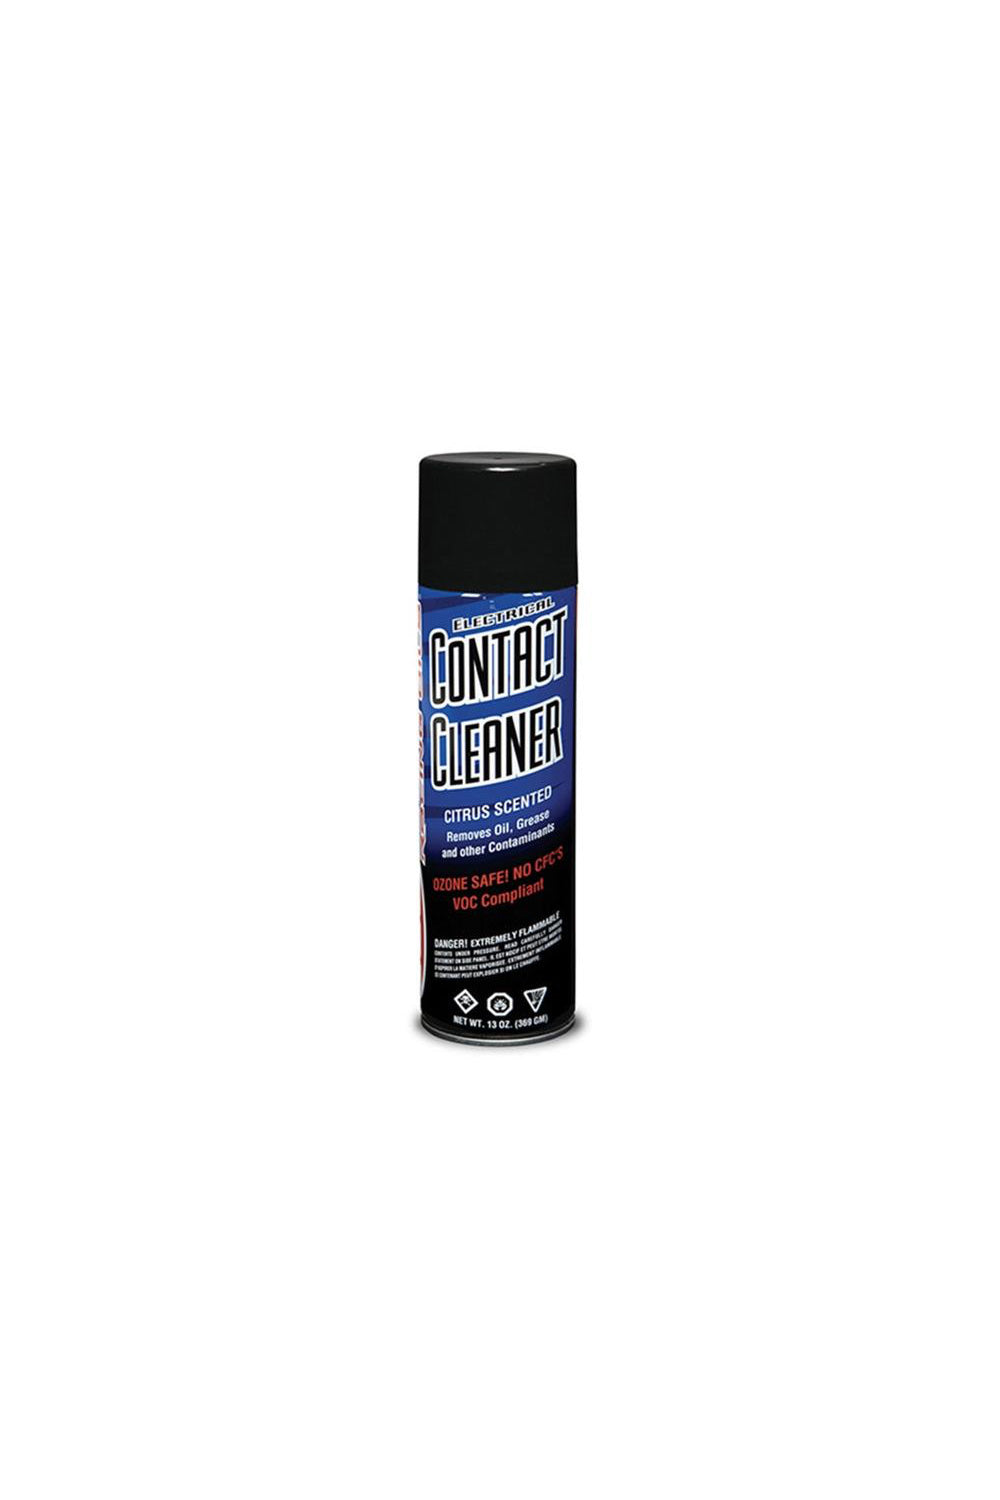 Maxima Mountain Bike Citrus Contact Cleaner 369gm/13oz